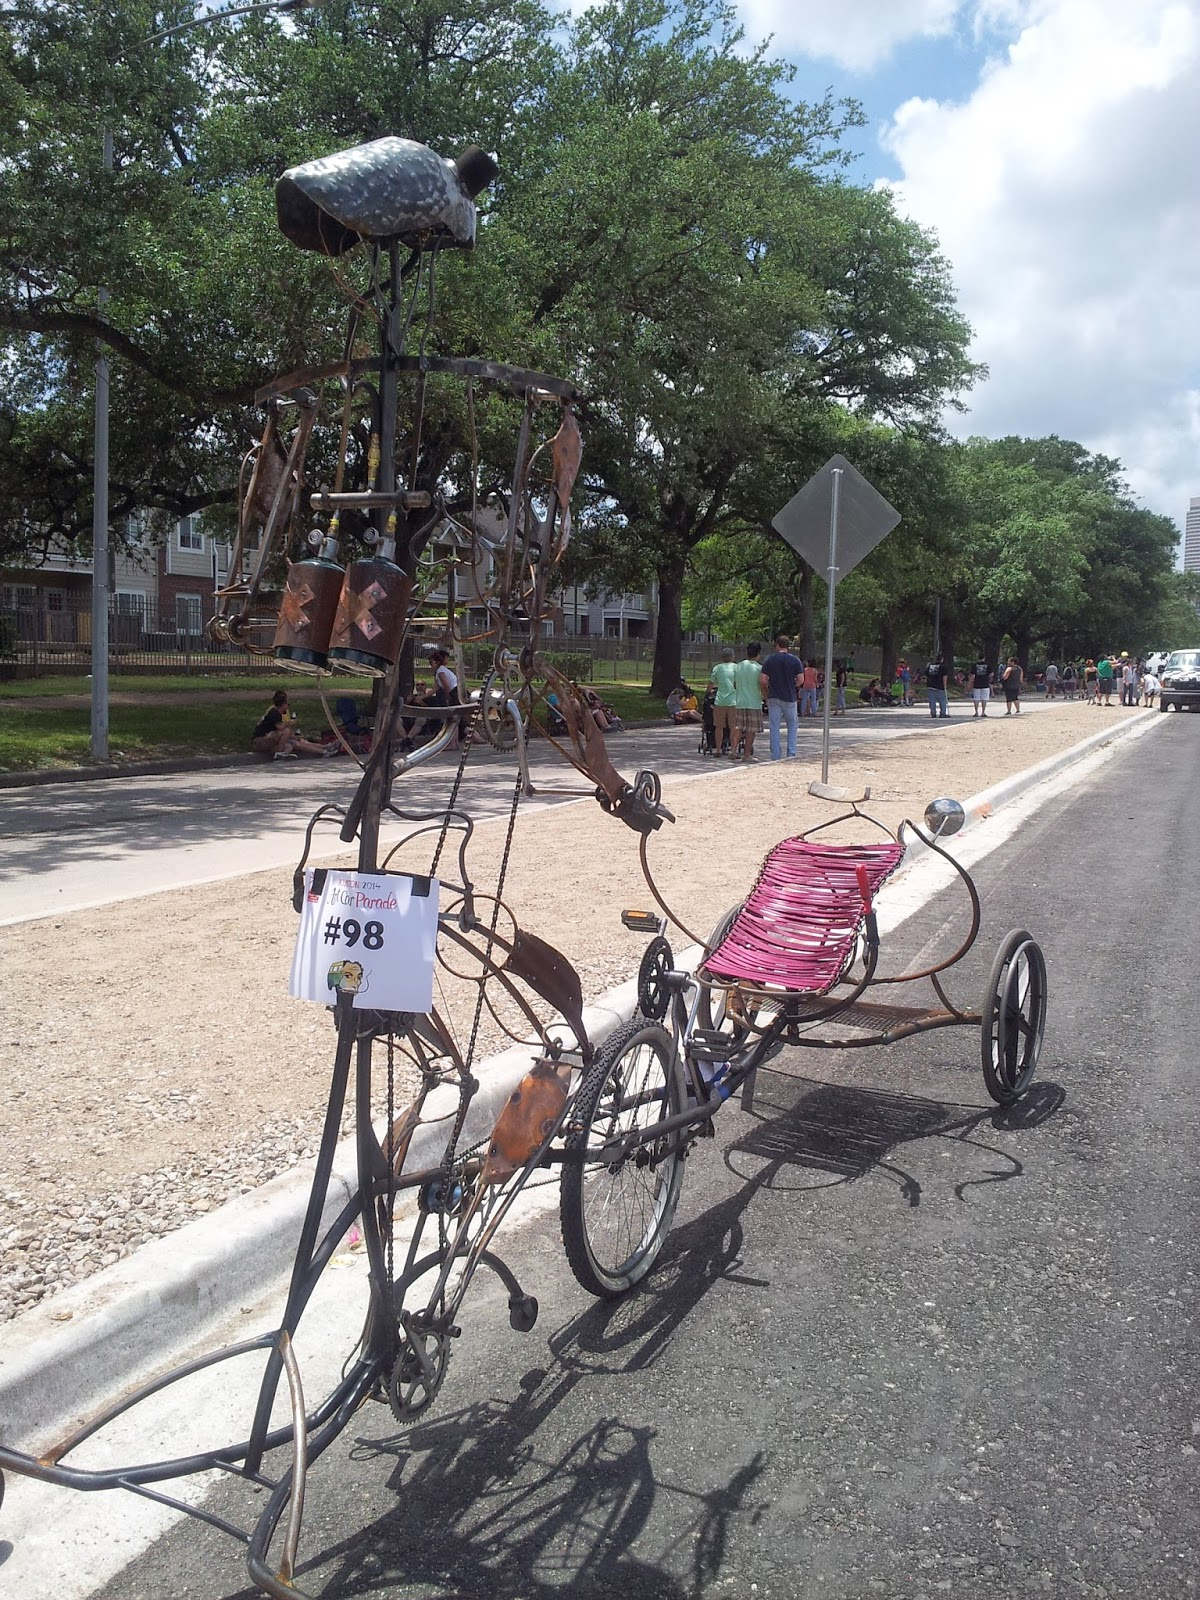 Customized bicycles, Houston Art Car Parade